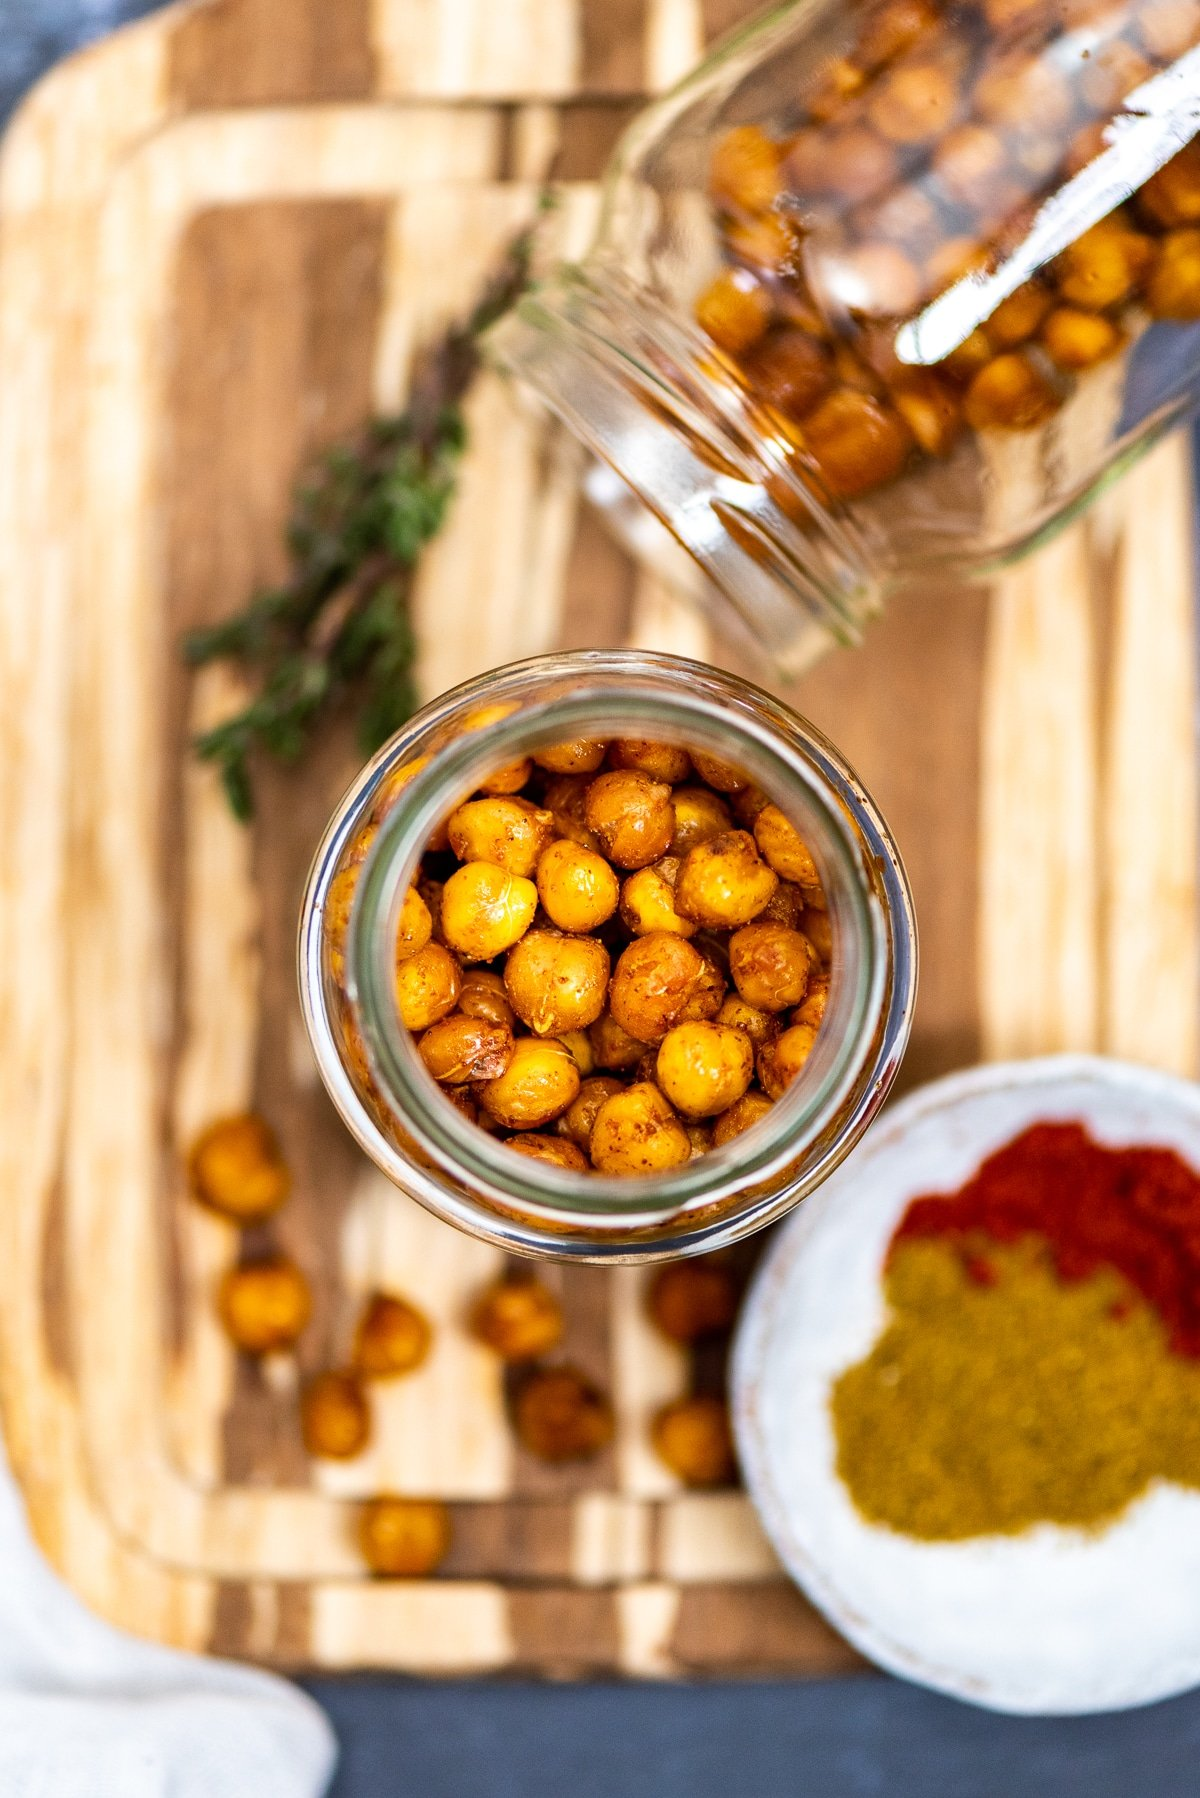 Crispy and spicy chickpeas are in two glass jars without a lid. Spices on the side.